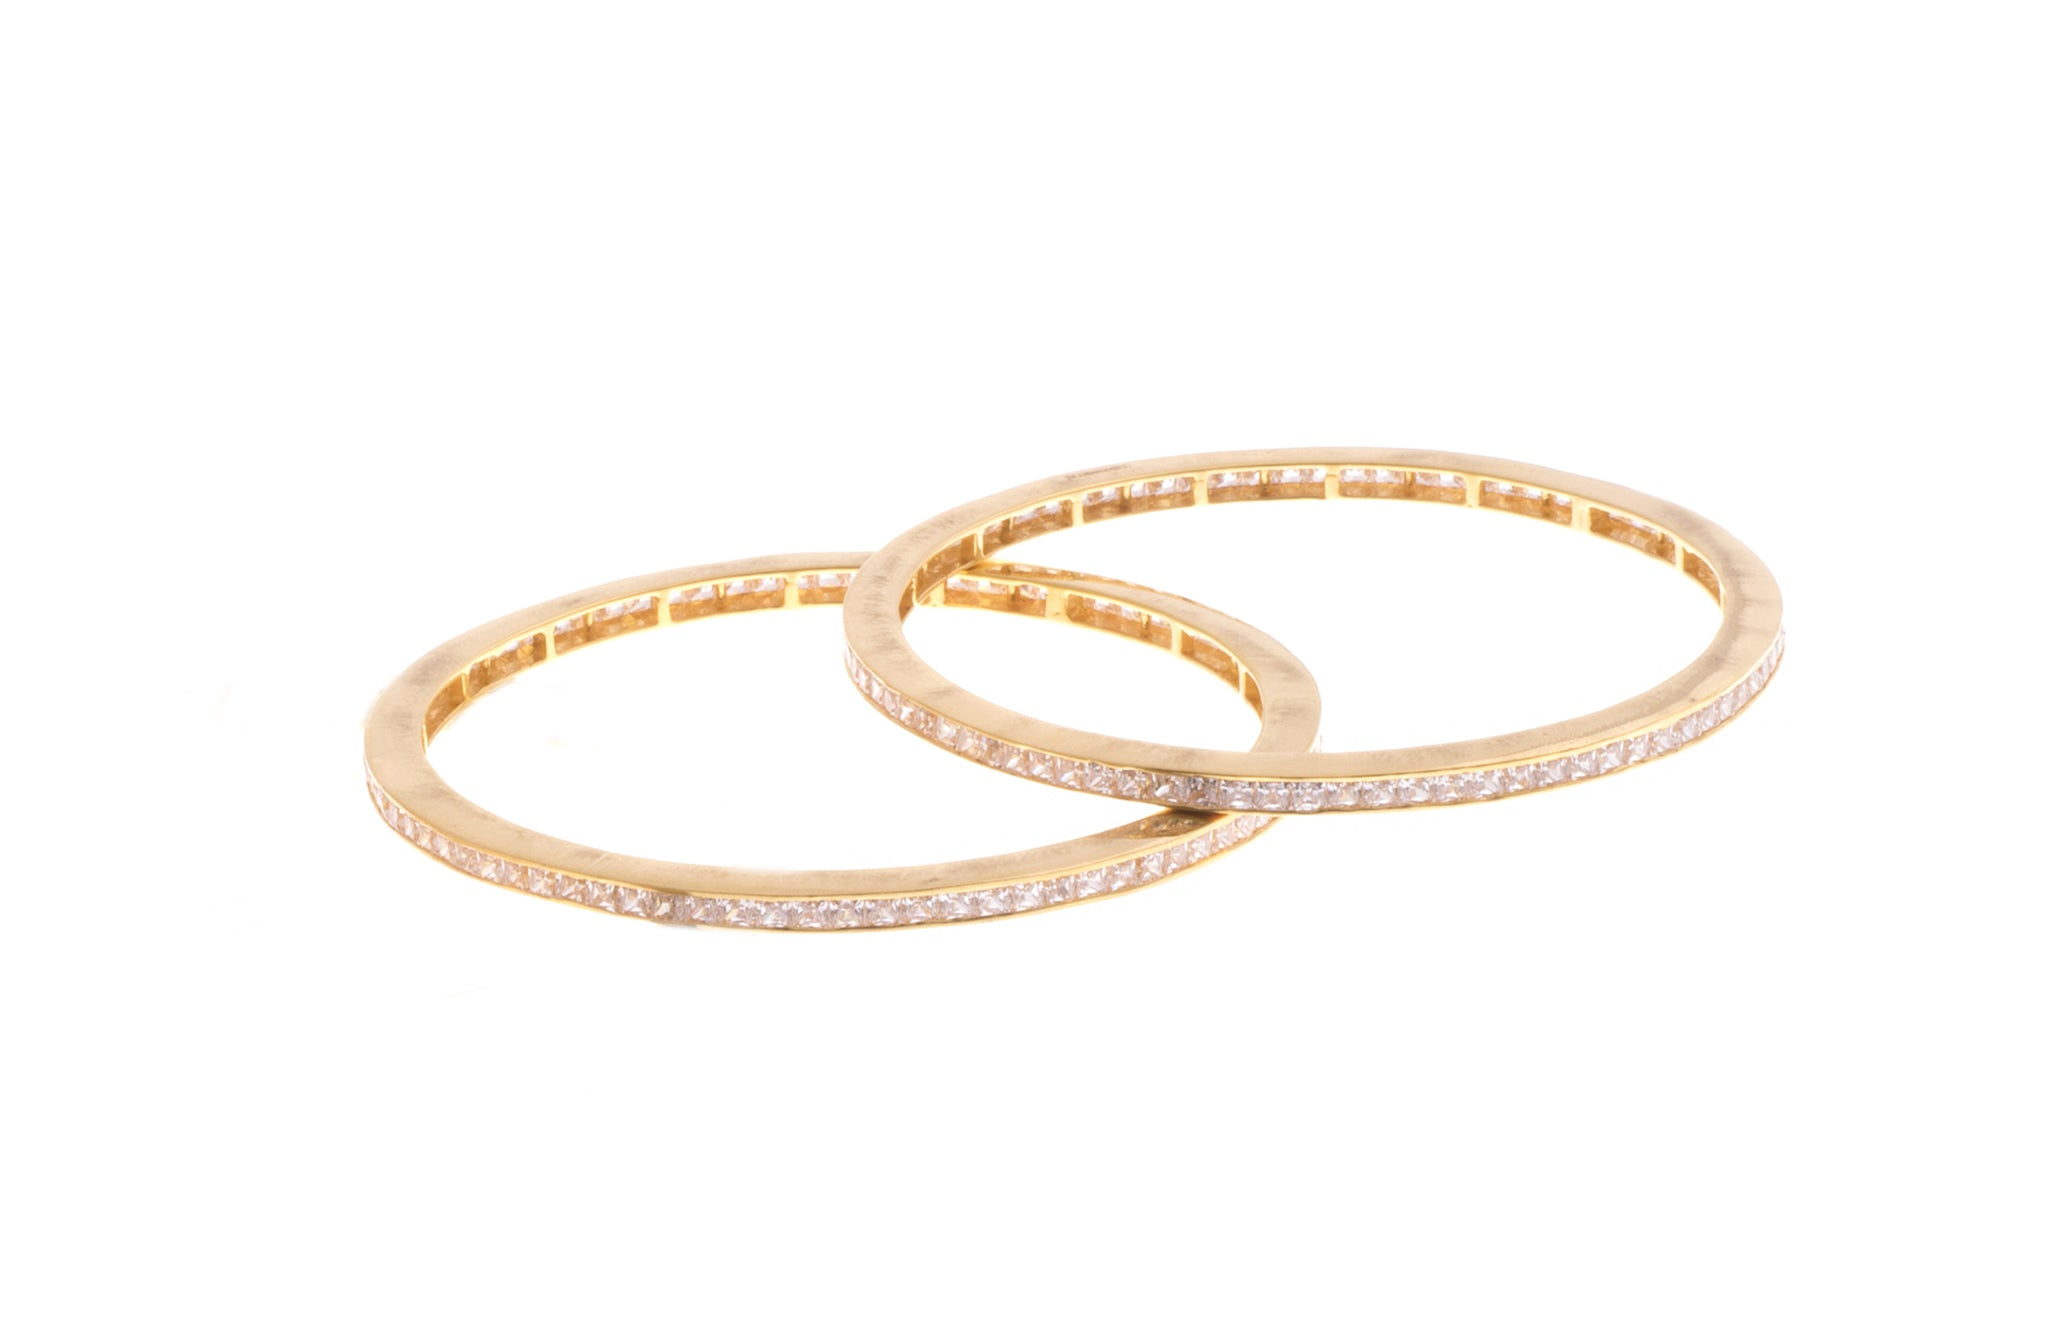 Stone Set 22ct Gold and Cubic Zirconia Bangles (B-1555) - Pair